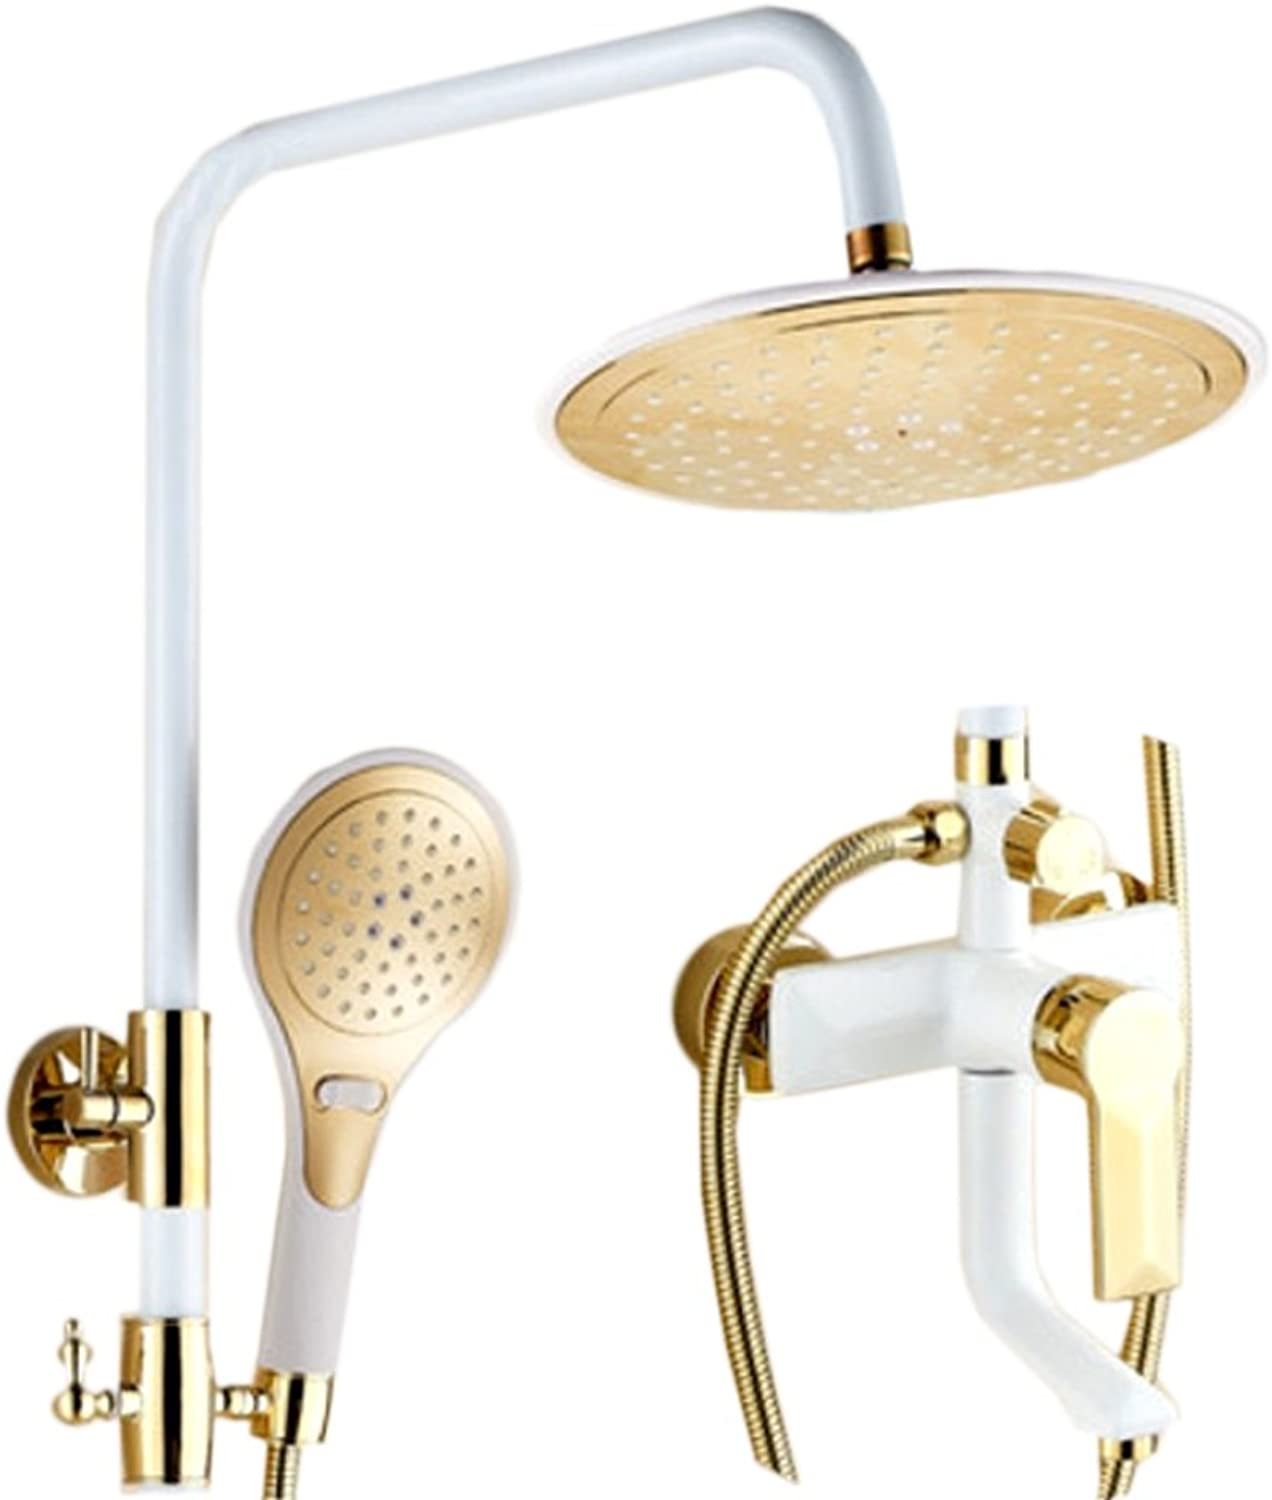 Shower LINGZHIGAN Set Wall Style European Style Home Bathroom Copper Faucet Hot And Cold Pressurized Nozzle gold White Environmentally Friendly Materials